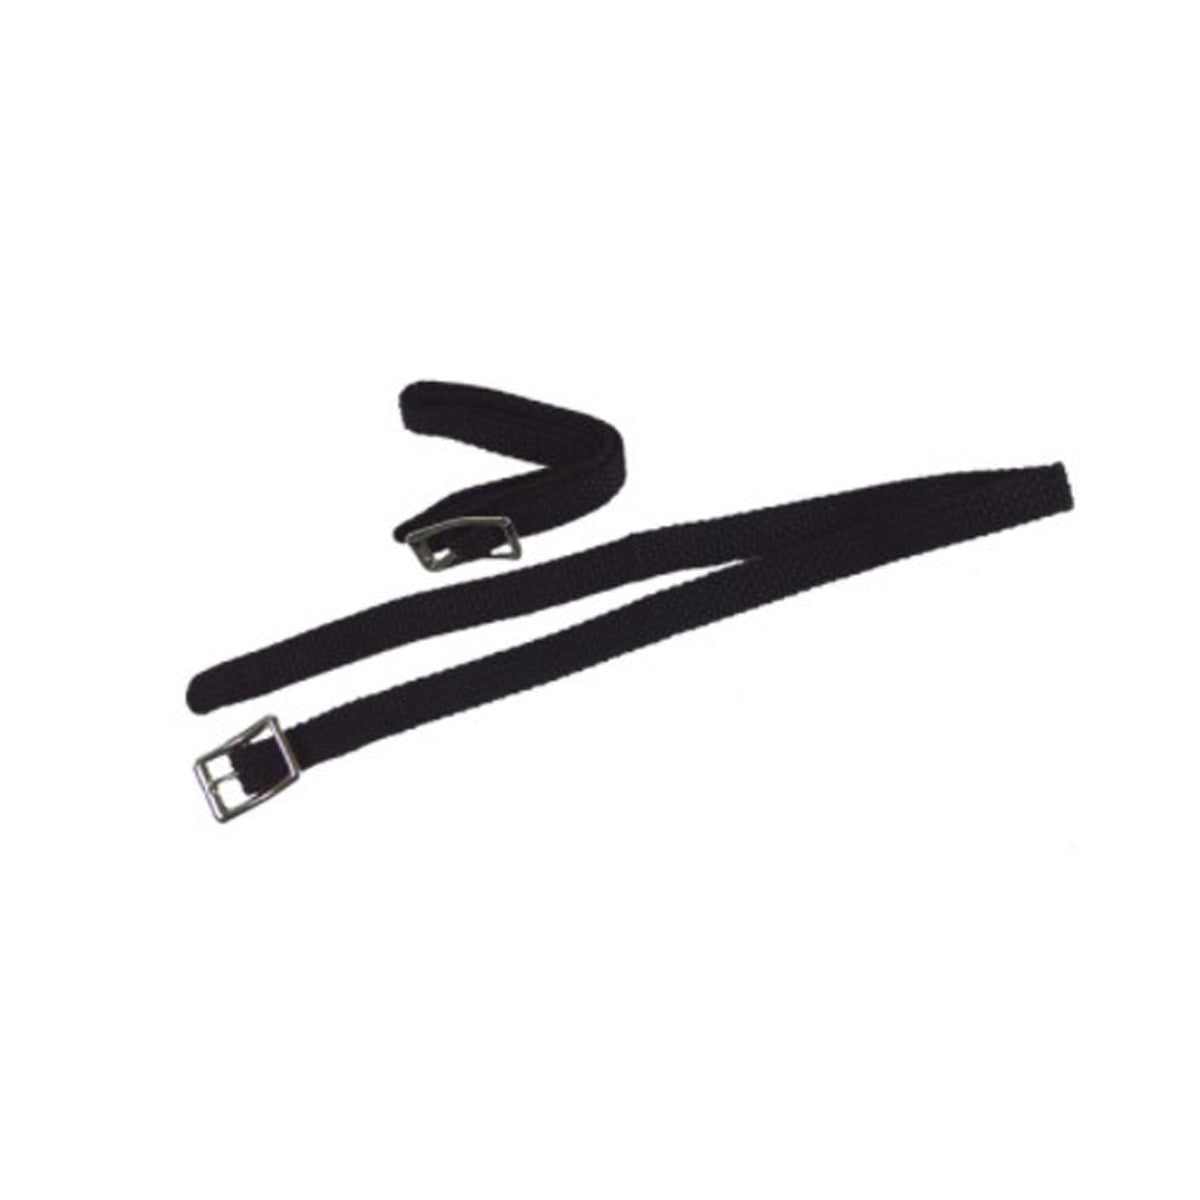 English Nylon Spur Straps